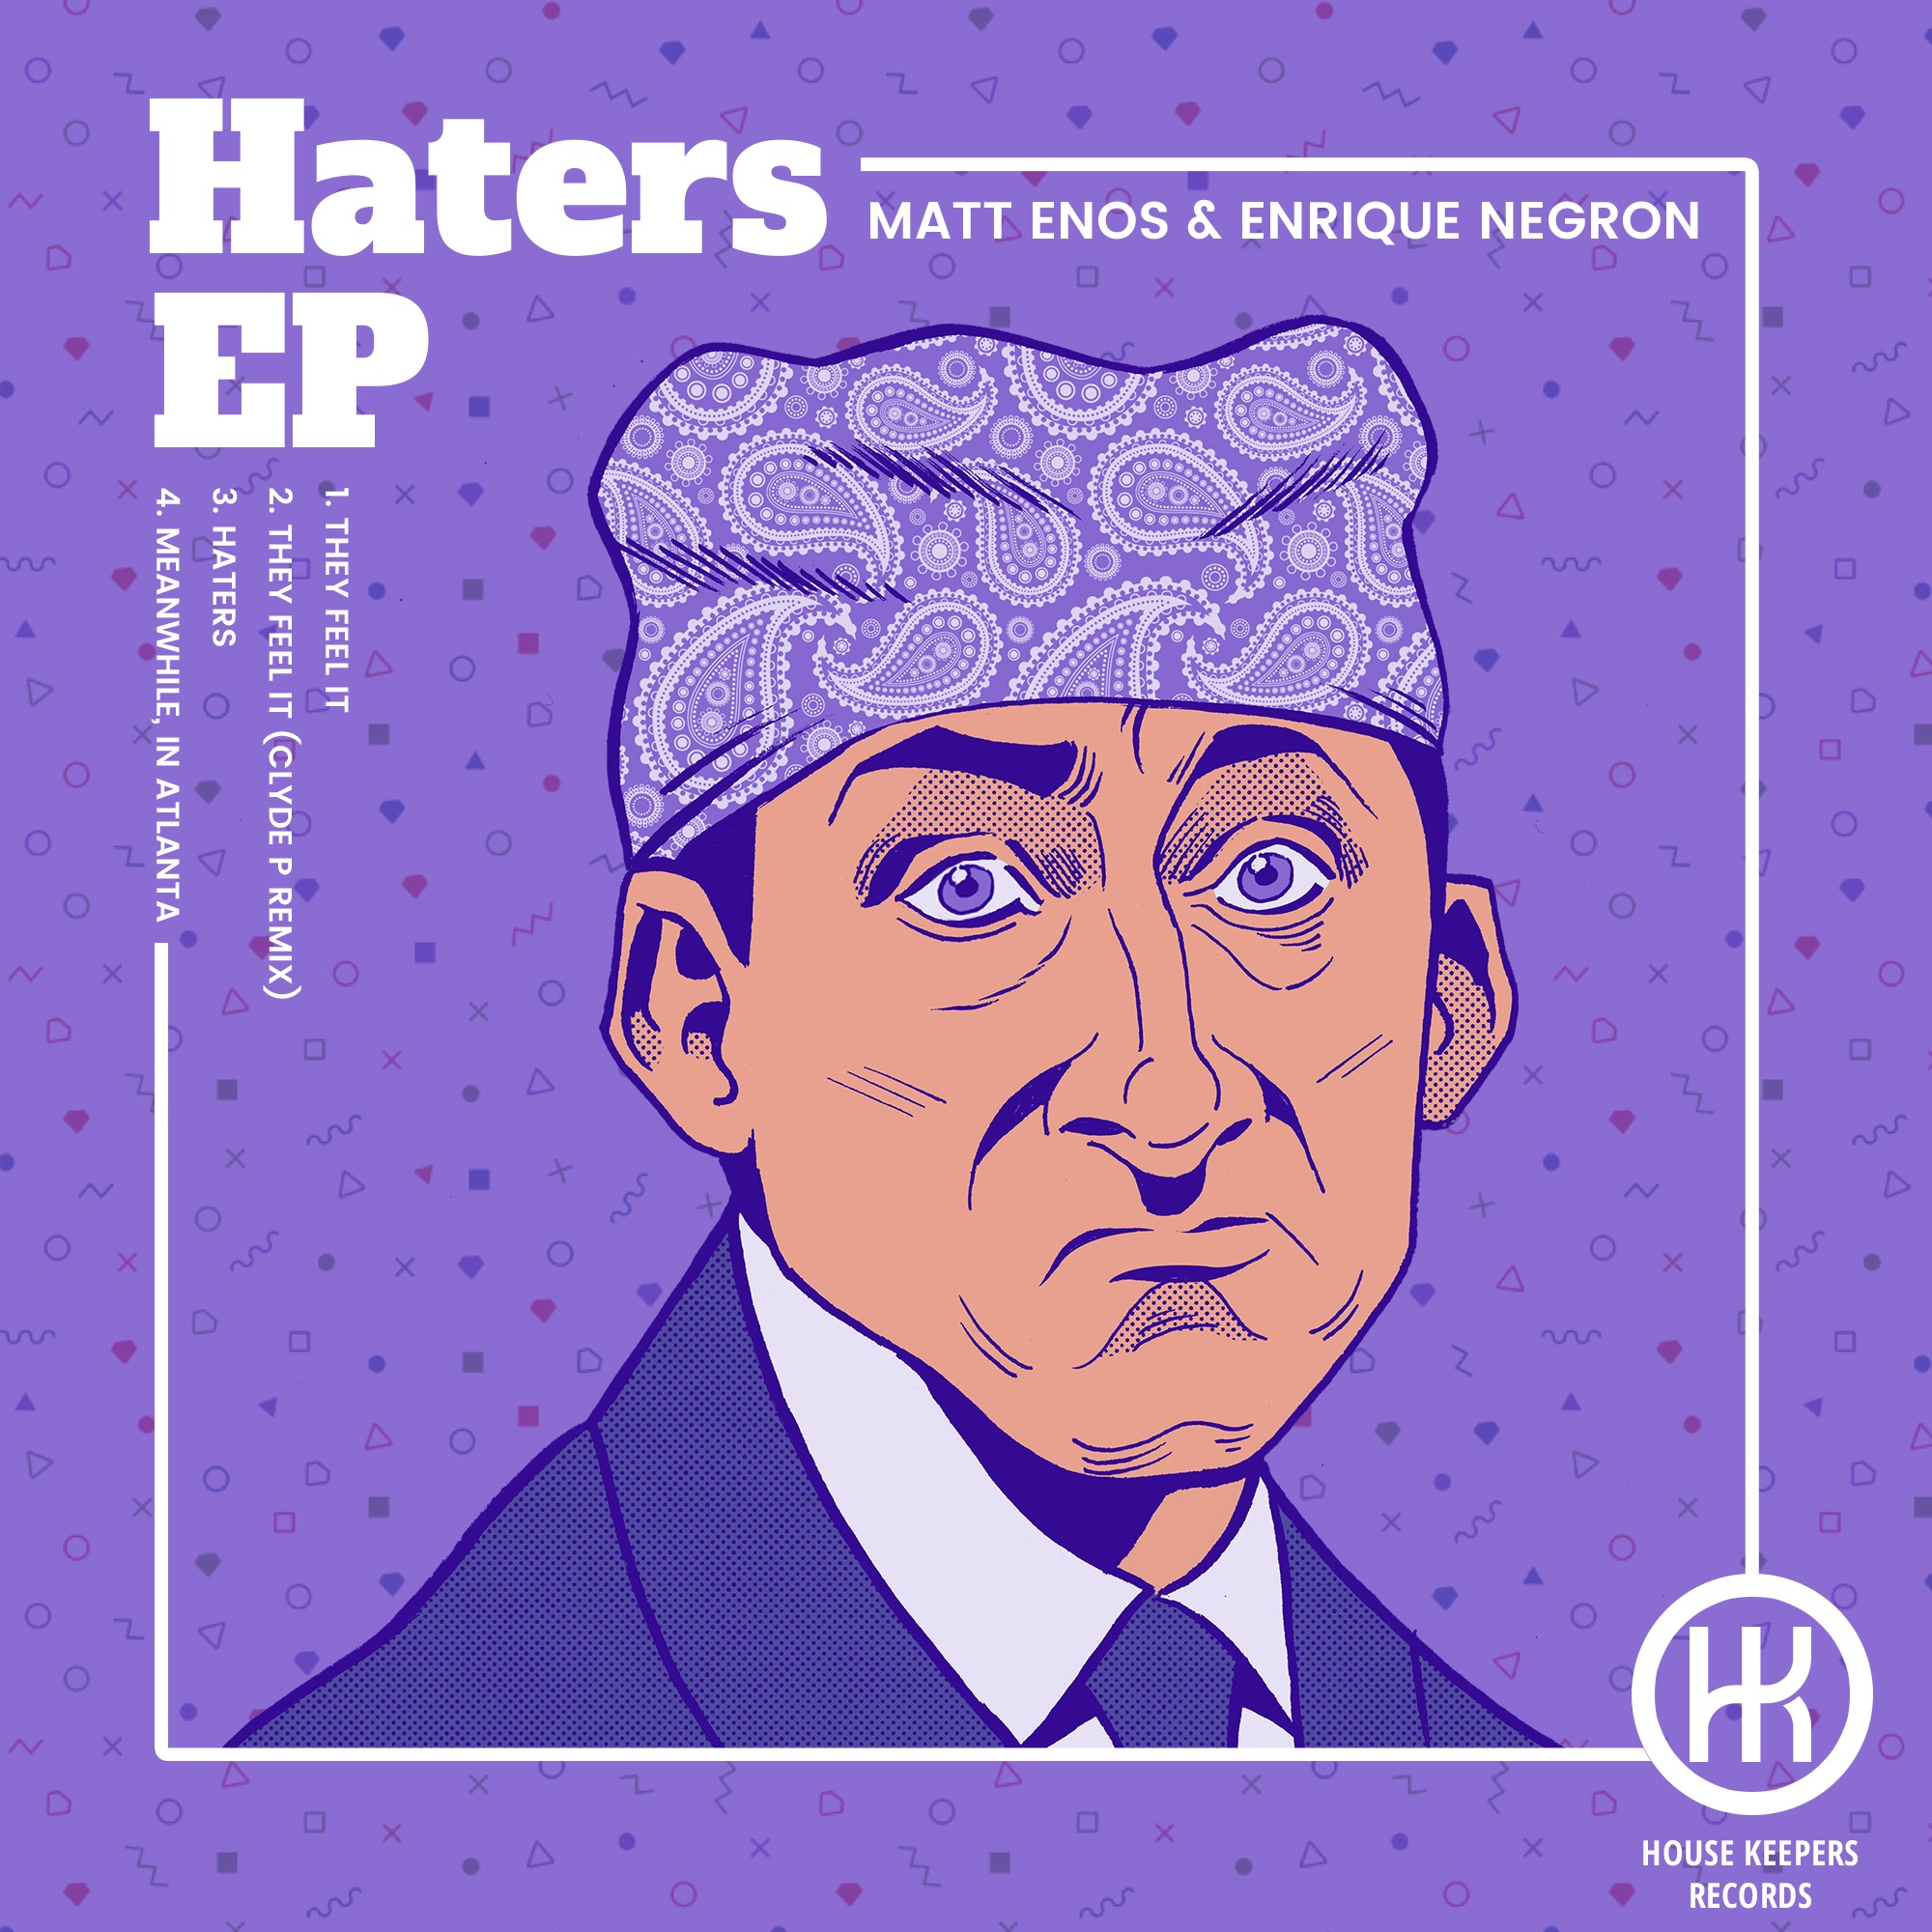 New 'Haters' EP Out On House Keepers Records